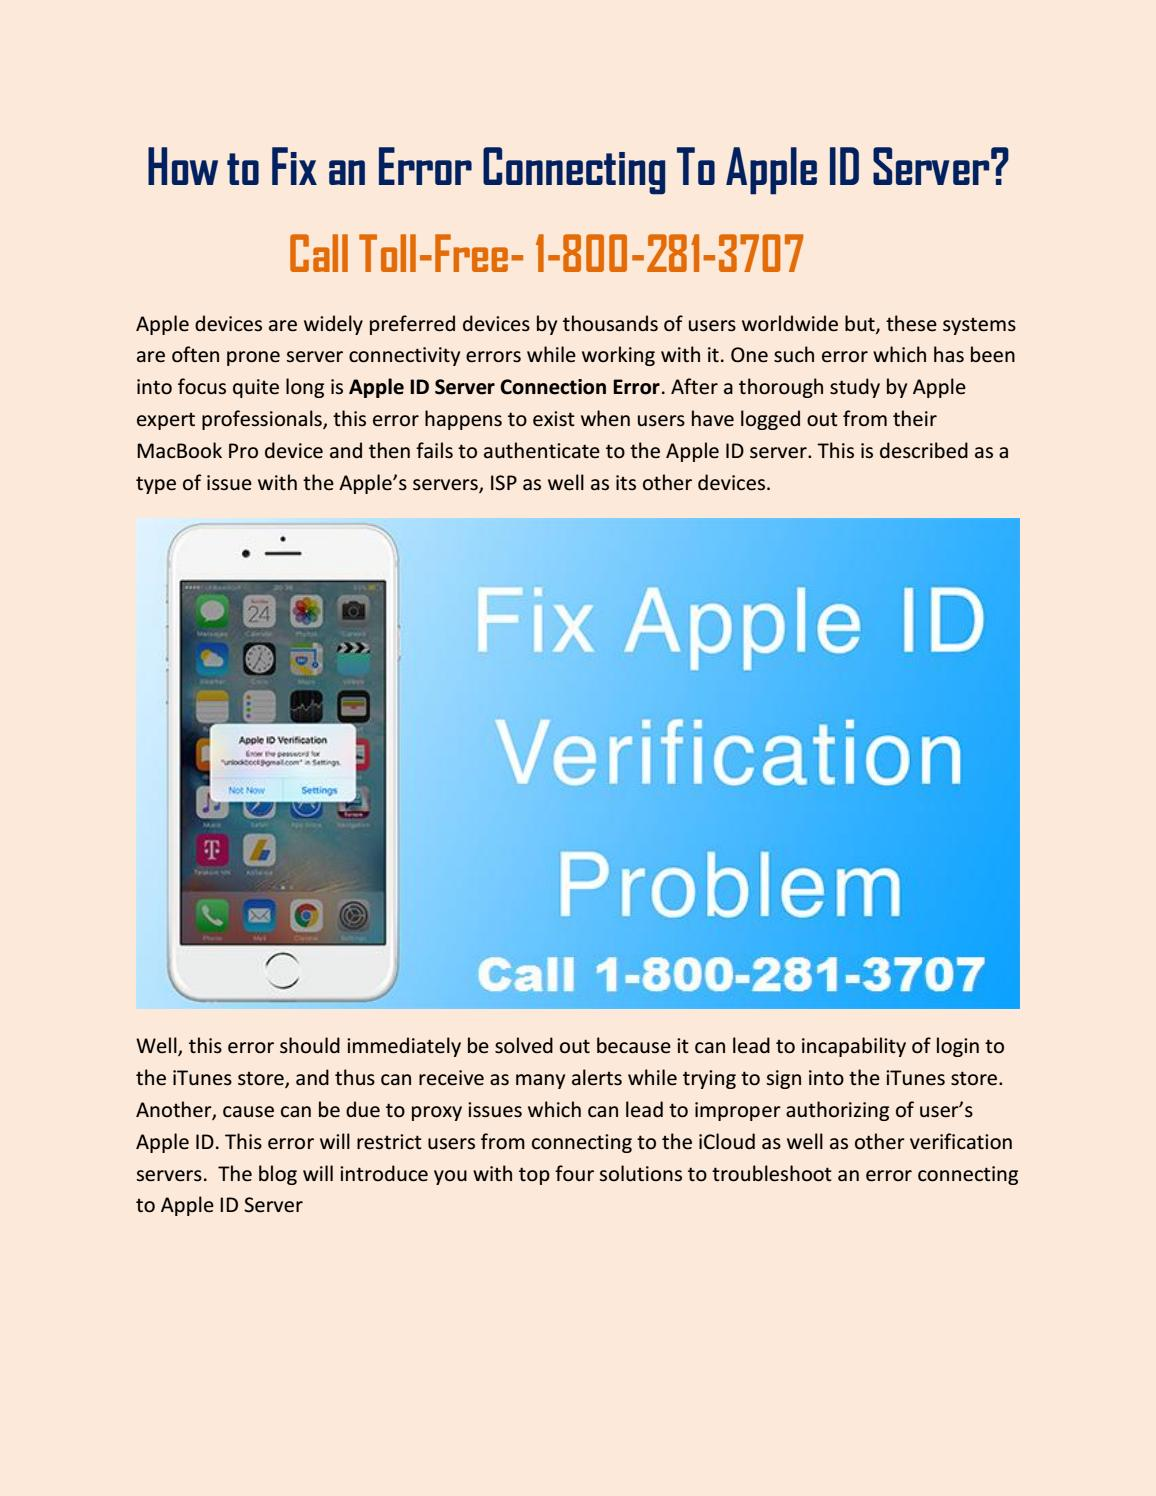 18002813707 Apple Verification Failed- An Error in